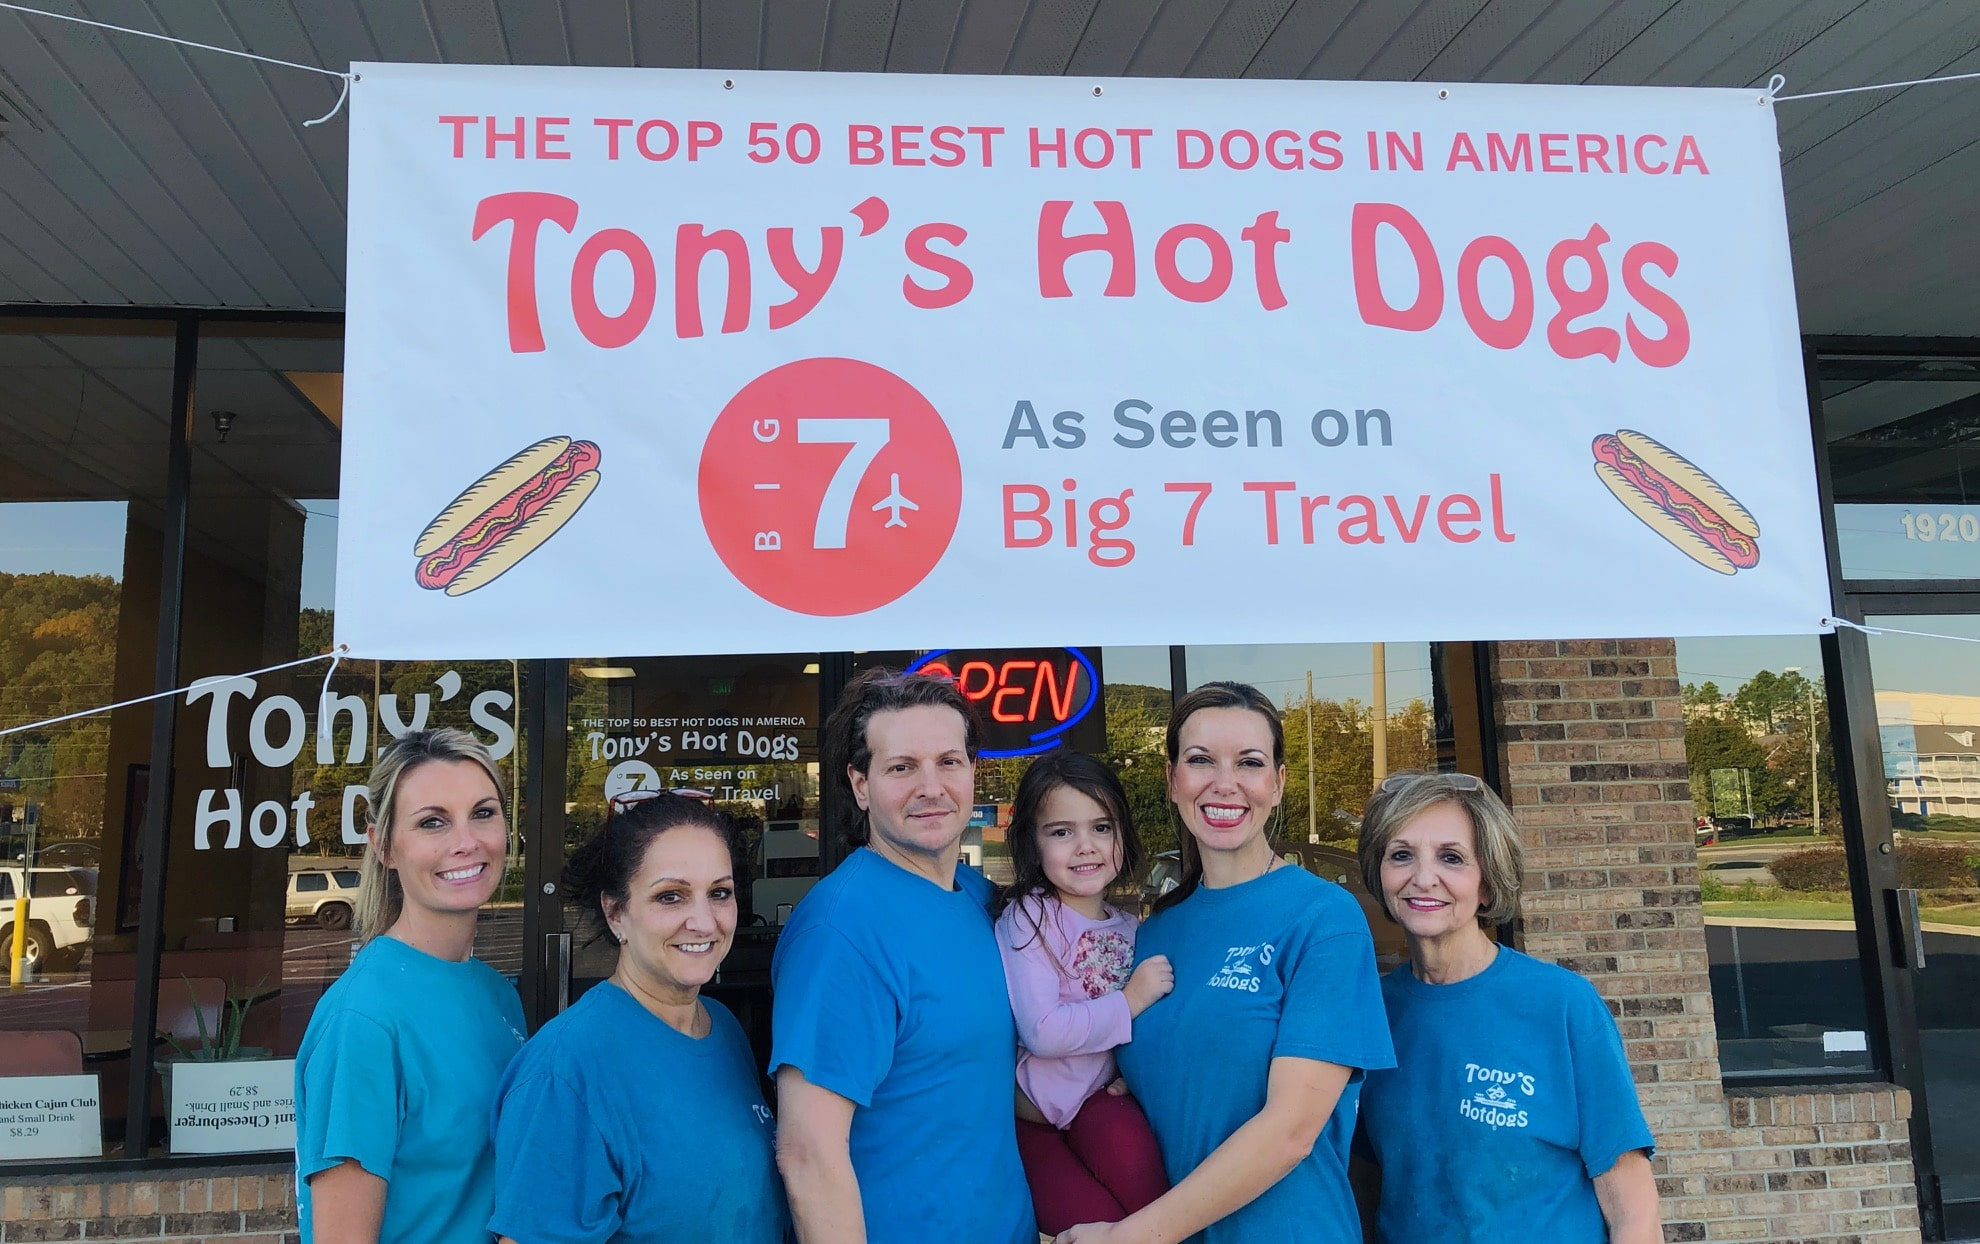 Family-run Tony's Hot Dogs in Pelham named top 50 best hot dogs in America by Big 7 Travel - Bham Now